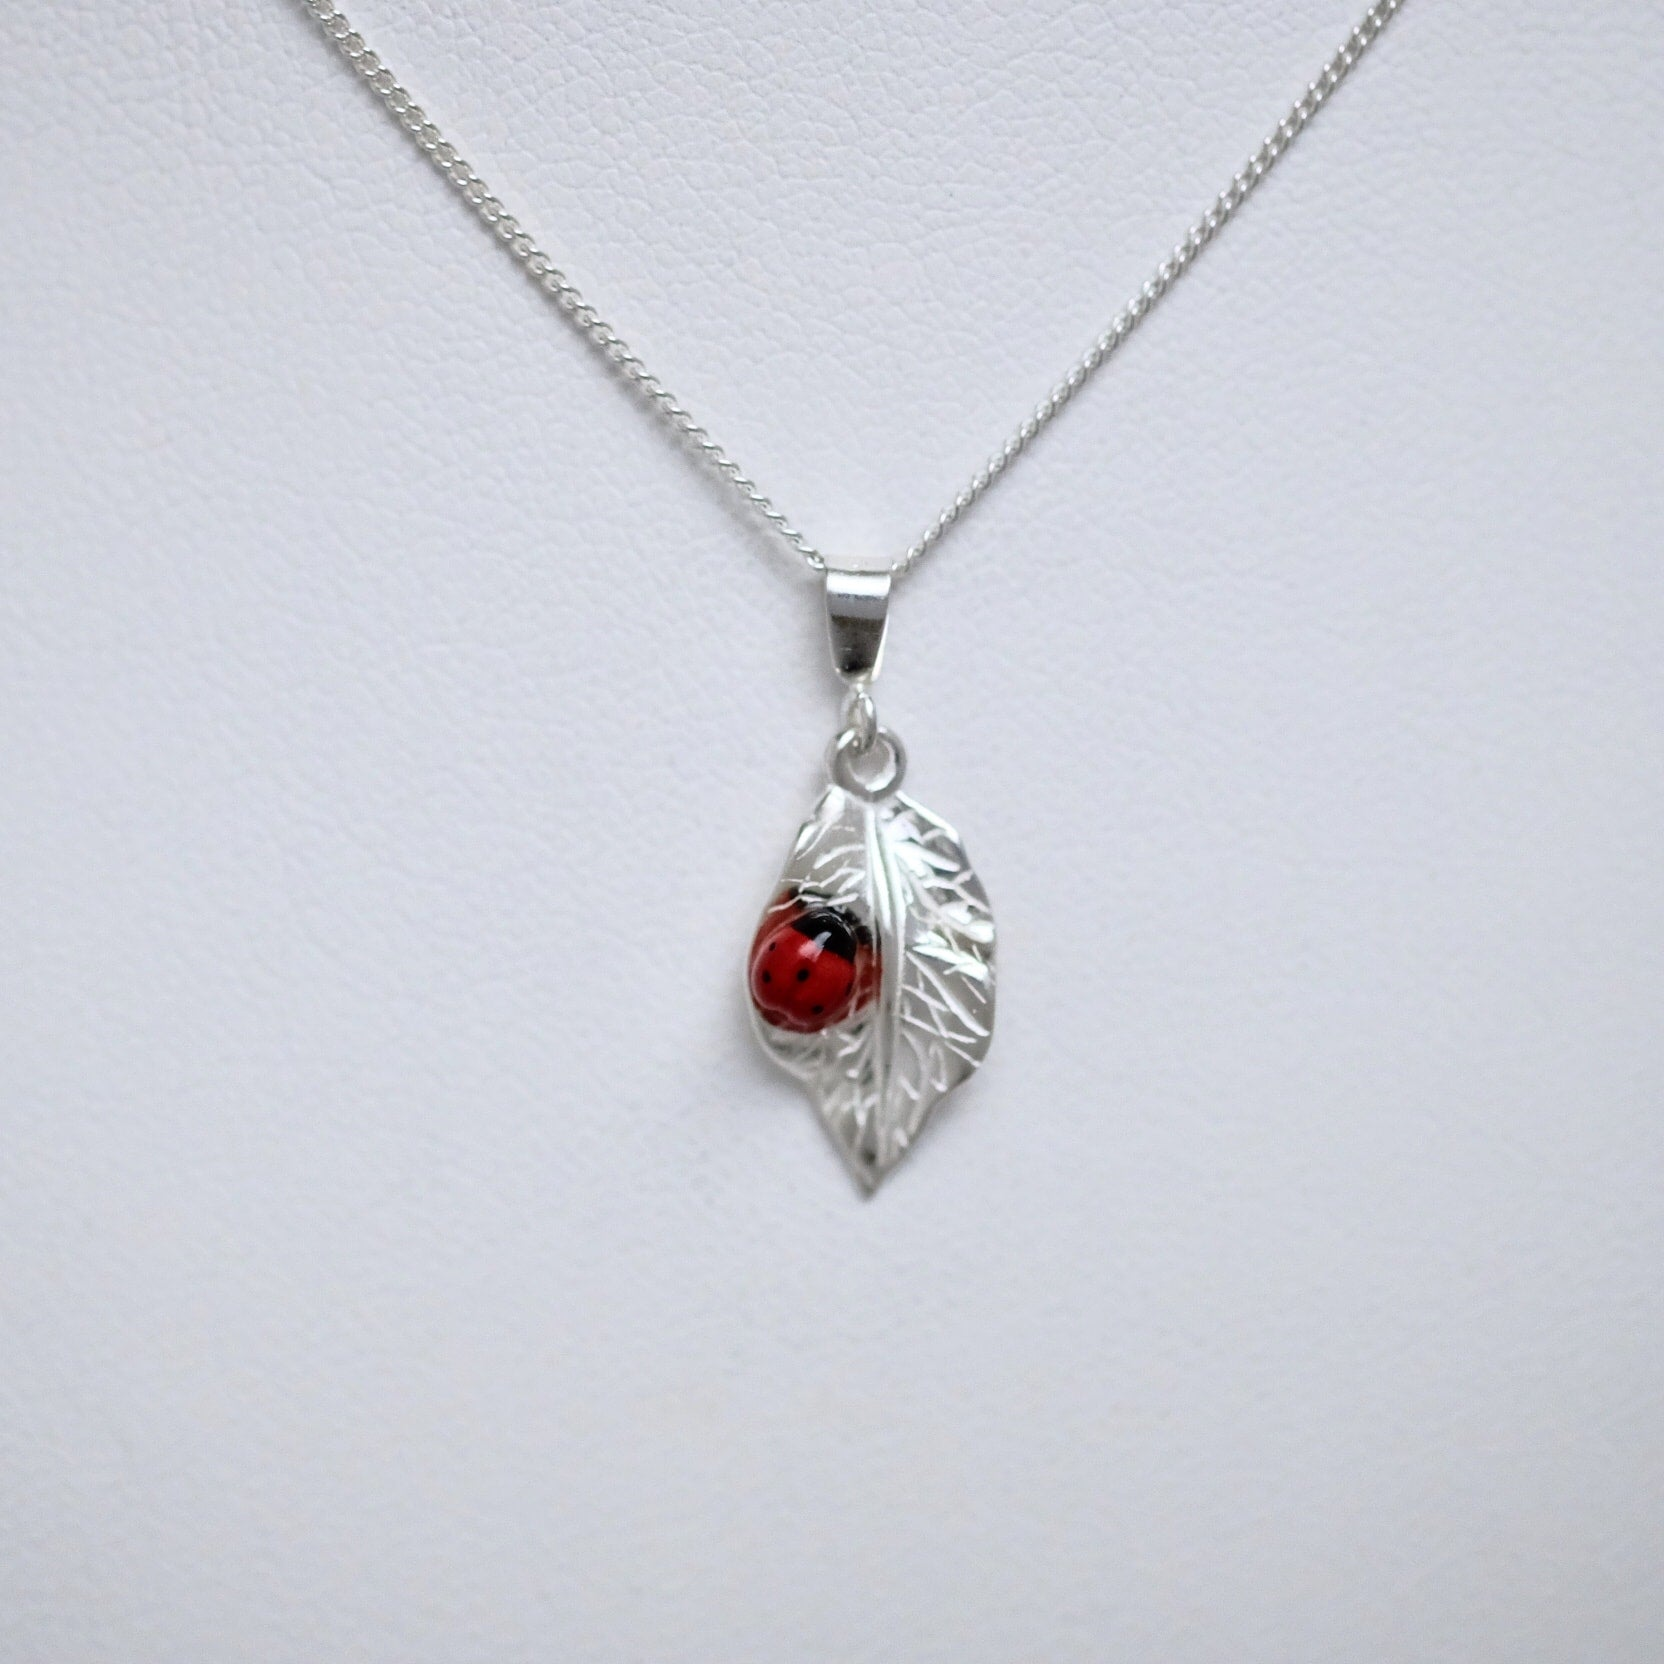 Porcelain ladybug leaf sterling silver necklace by Joseph Chiang